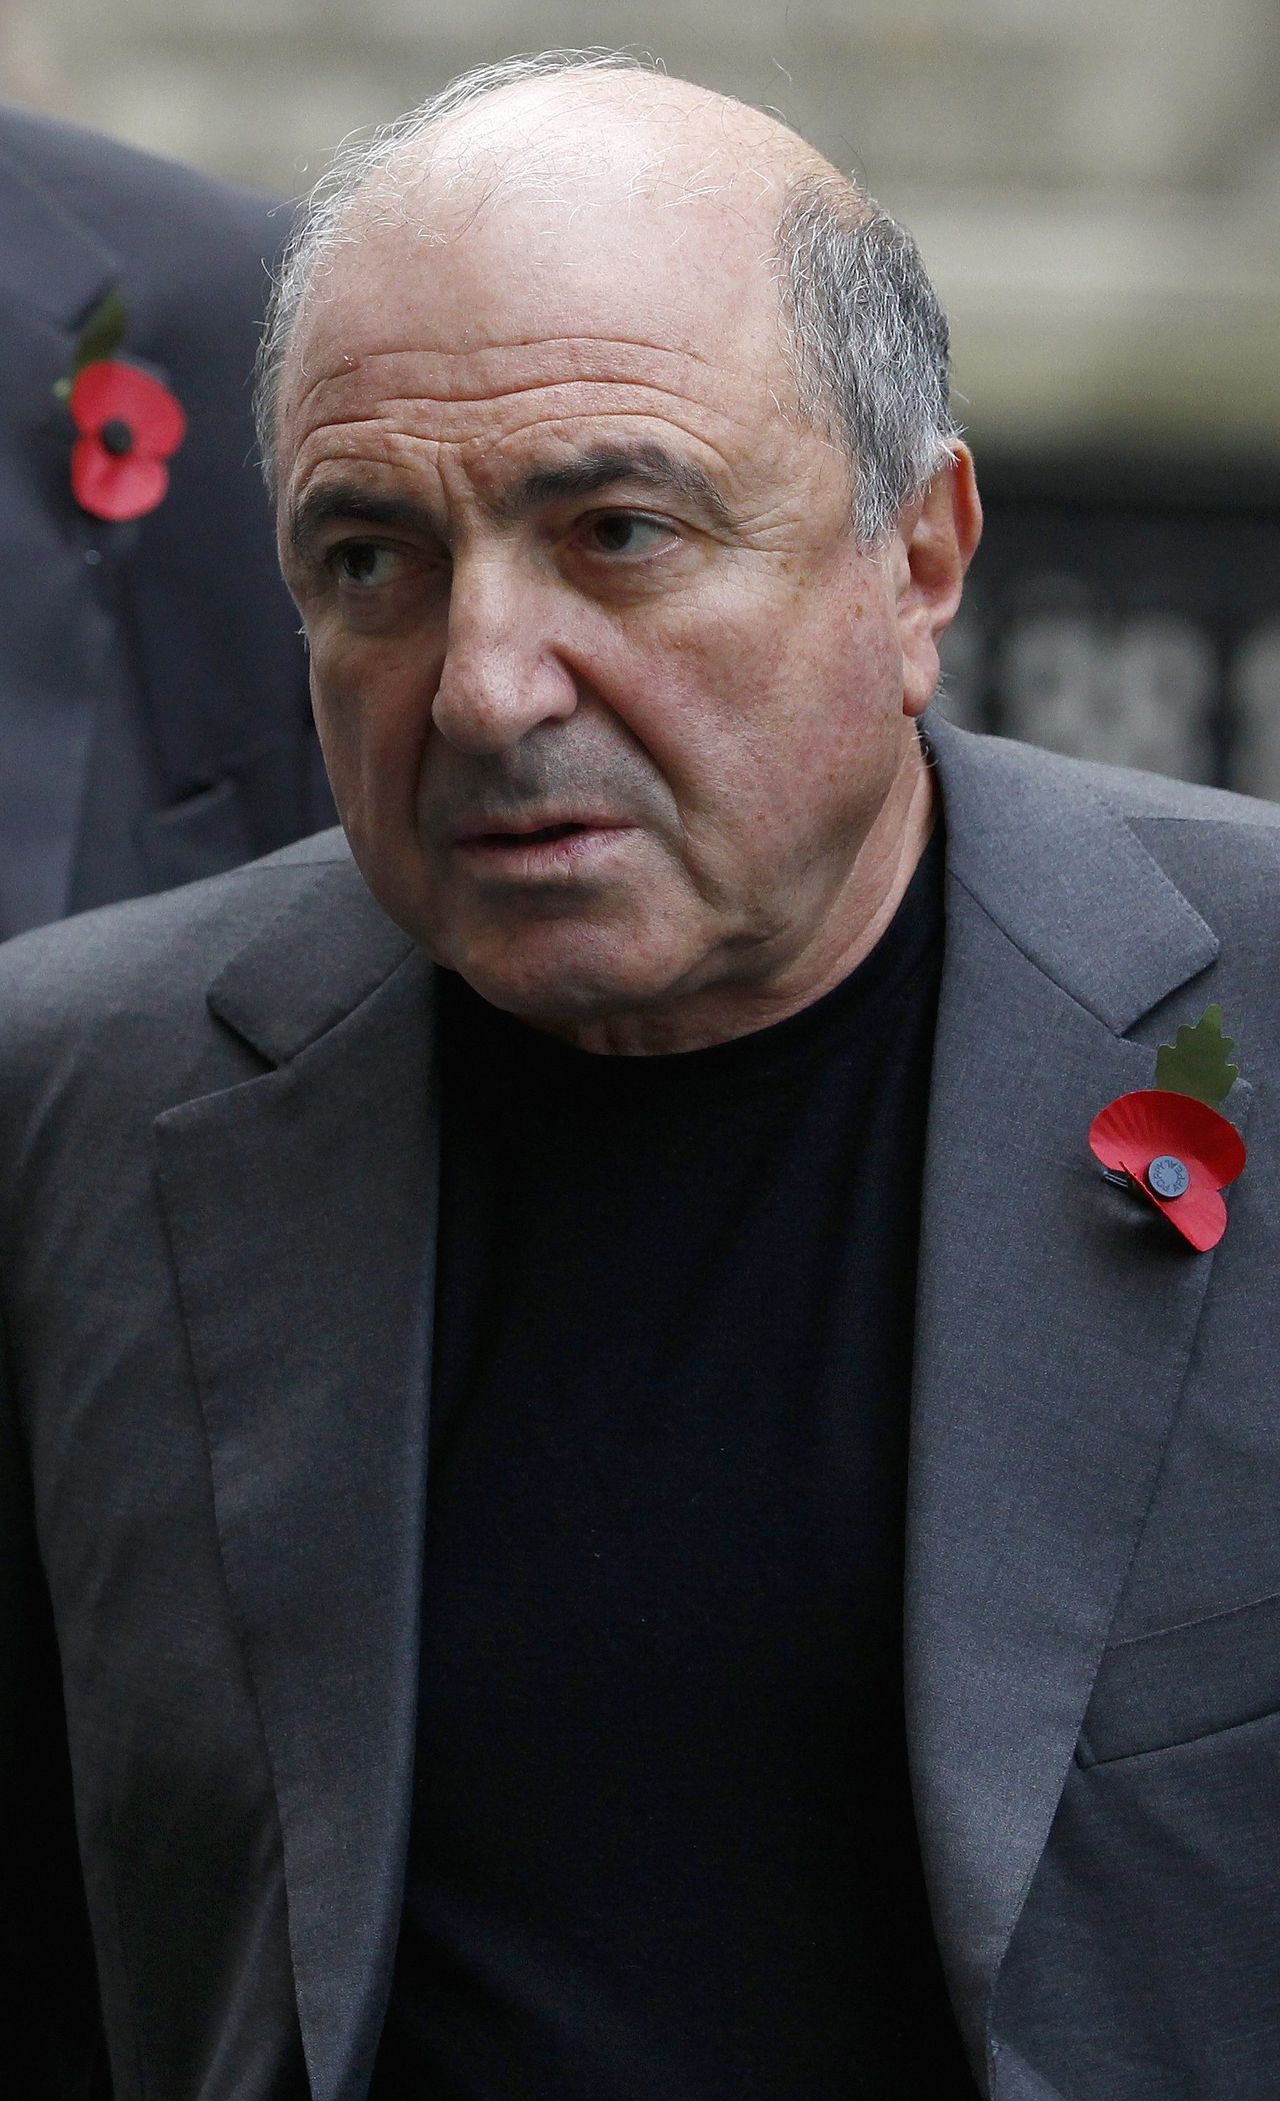 Russian oligarch Boris Berezovsky arrives at a division of the High Court in central London November 4, 2011. Russian billionaire and owner of Chelsea football club Roman Abramovich and Berezovsky are locked in a $6 billion legal battle in London's Commercial Court, with Berezovsky accusing his former protege of intimidating him in 2000 into selling shares in oil company Sibneft at a fraction of their value. REUTERS/Andrew Winning (BRITAIN - Tags: BUSINESS ENERGY)